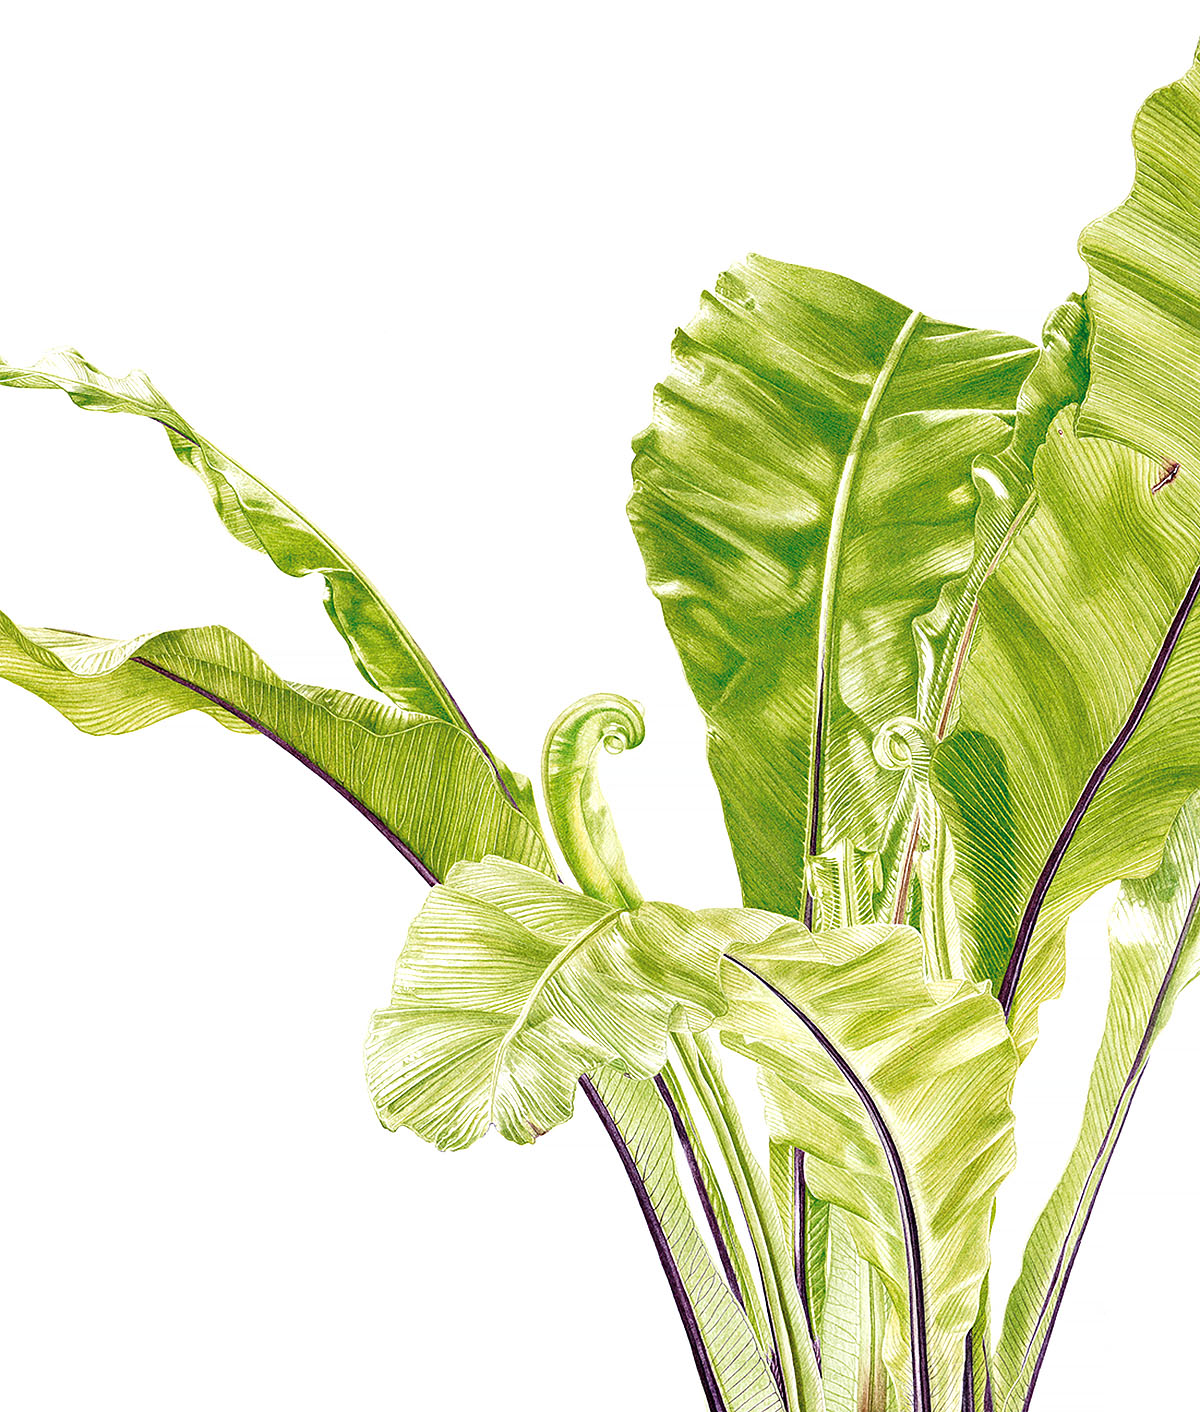 Marianne Hazlewood, 'Asplenium nidus', watercolour on Fabriano 5